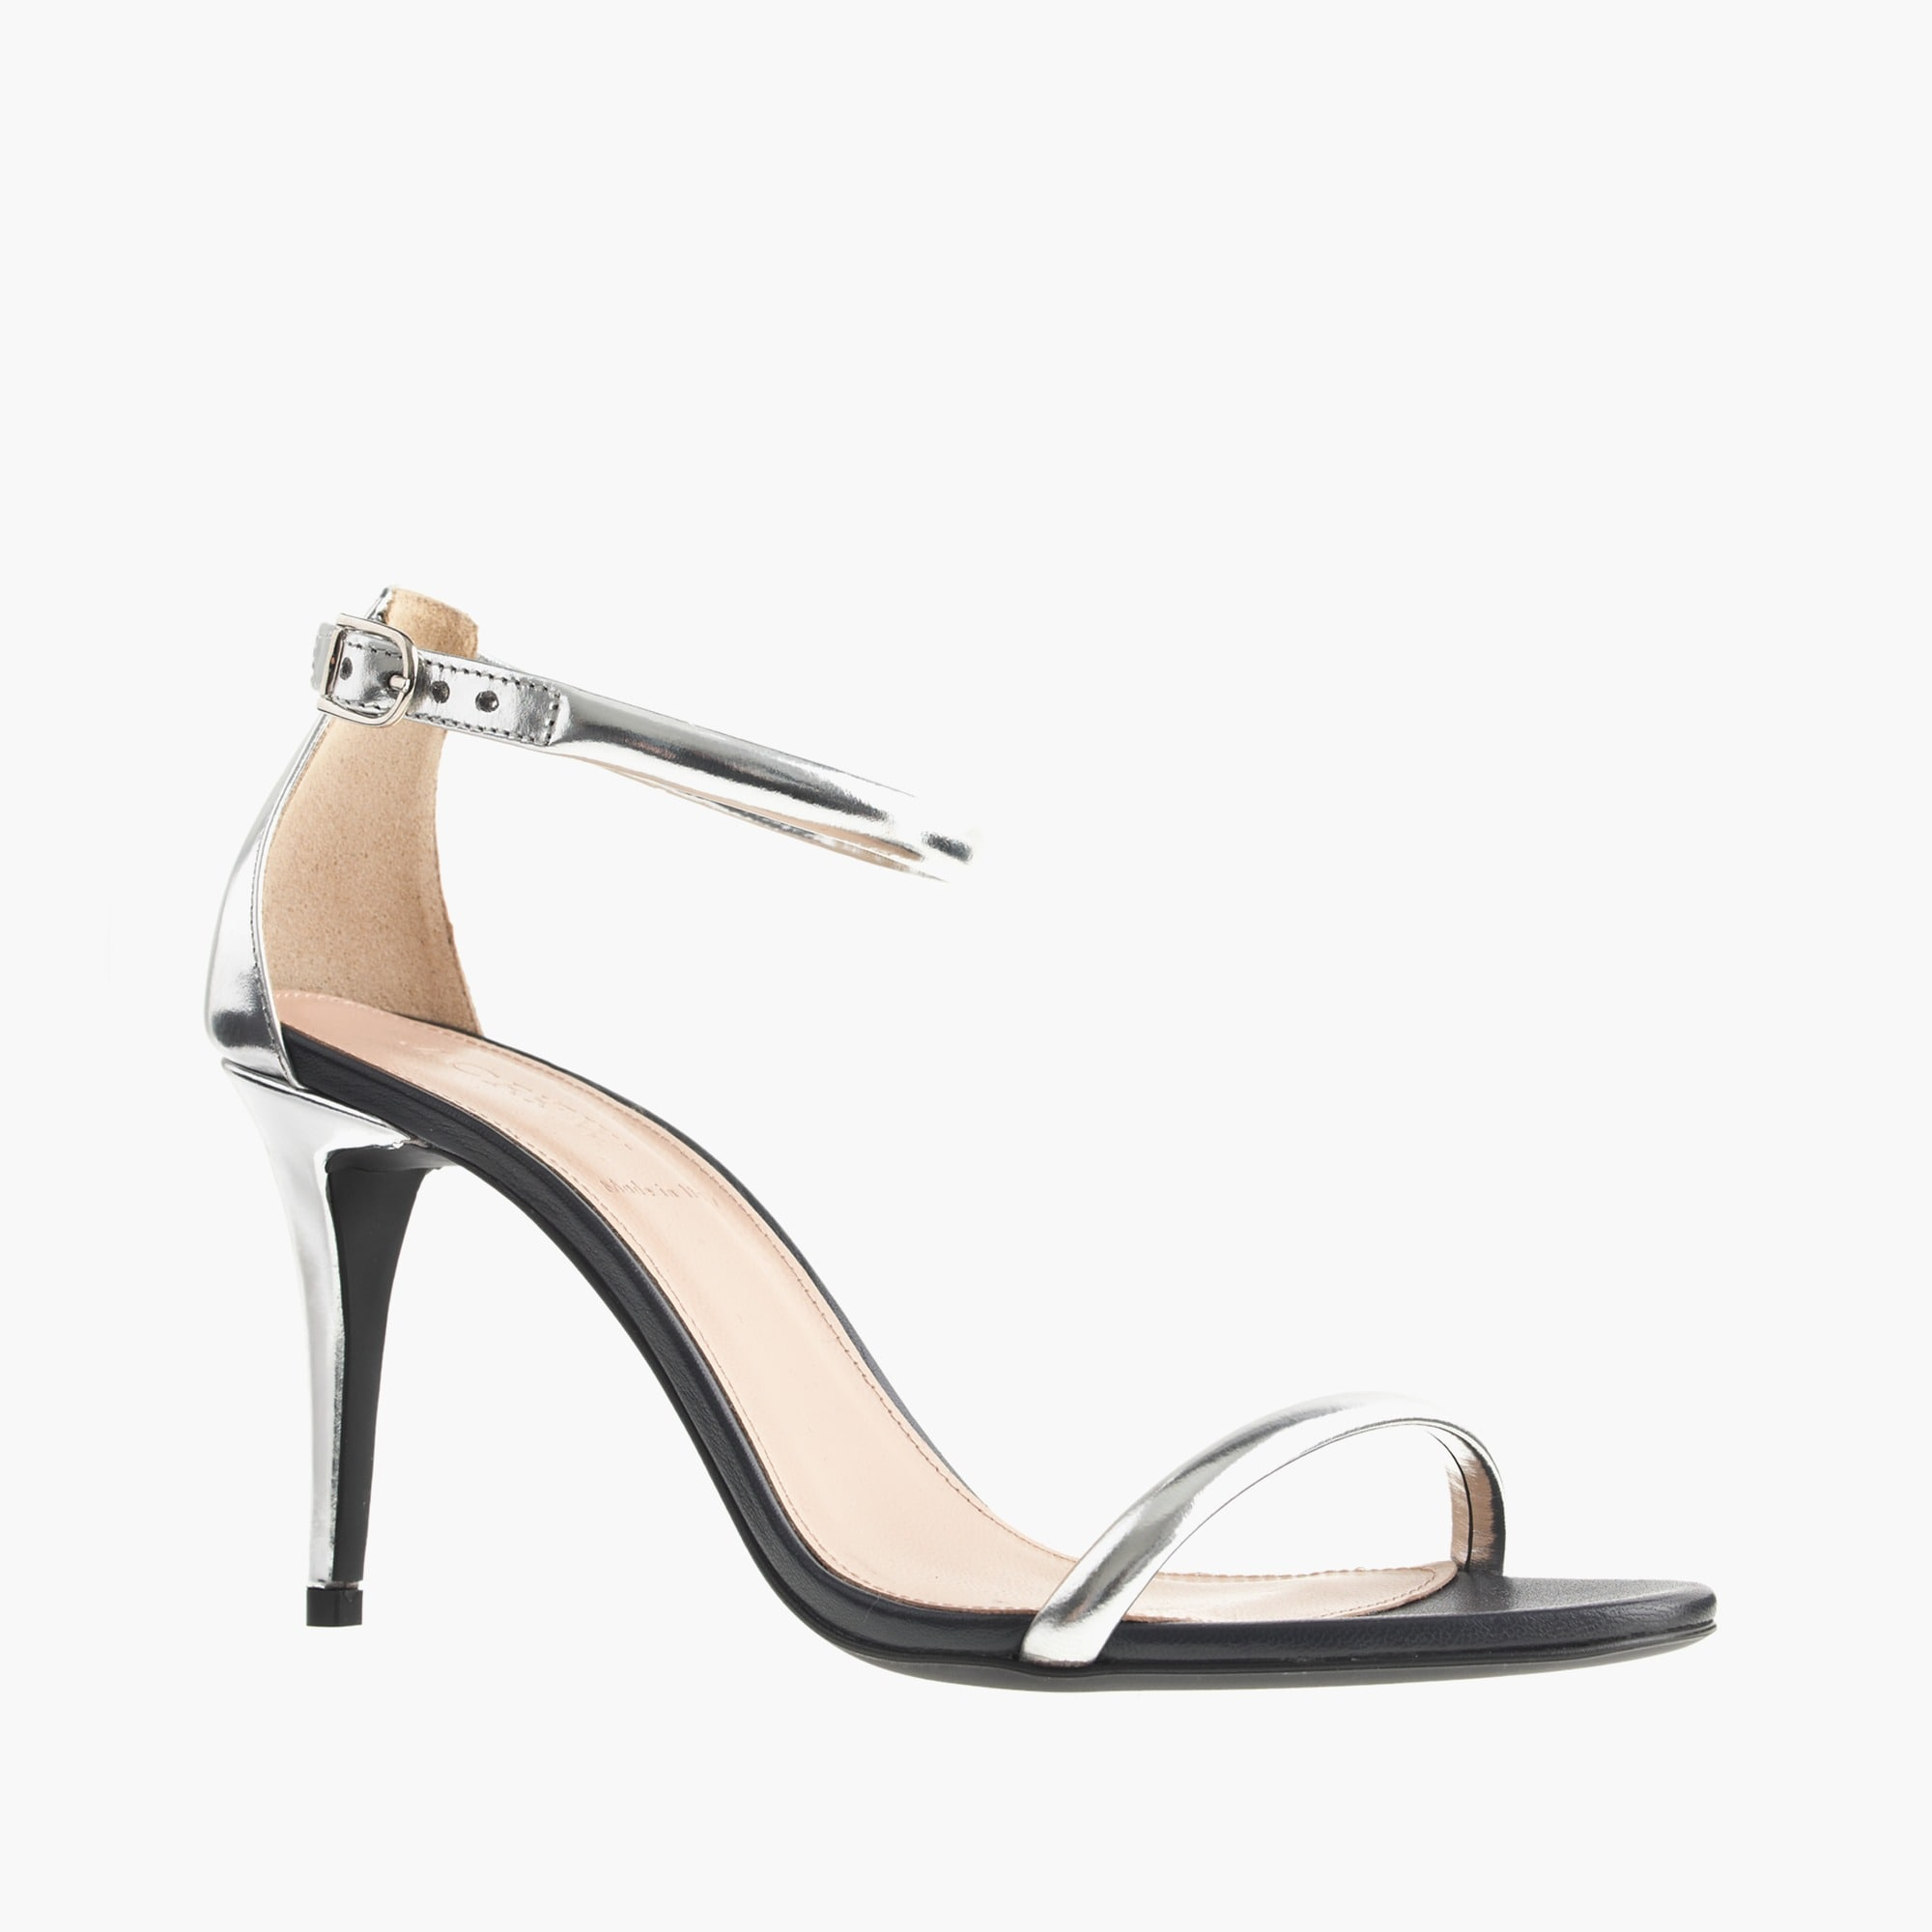 mixed leather strappy high-heel sandals : women's sandals